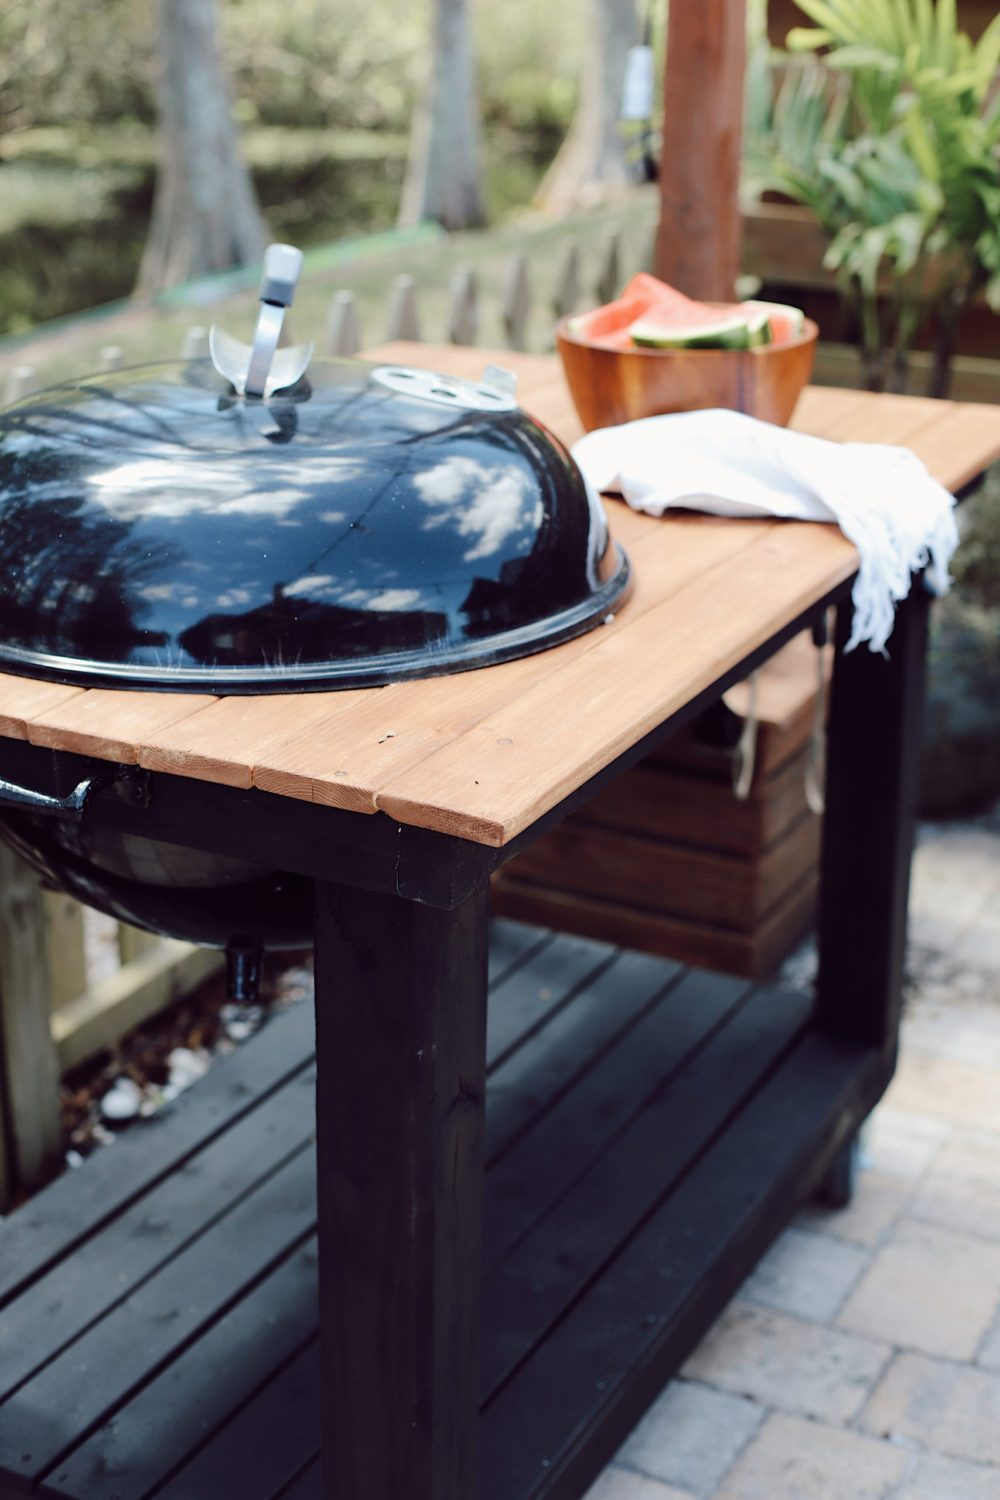 How to Make a DIY Grill Table You'll Love